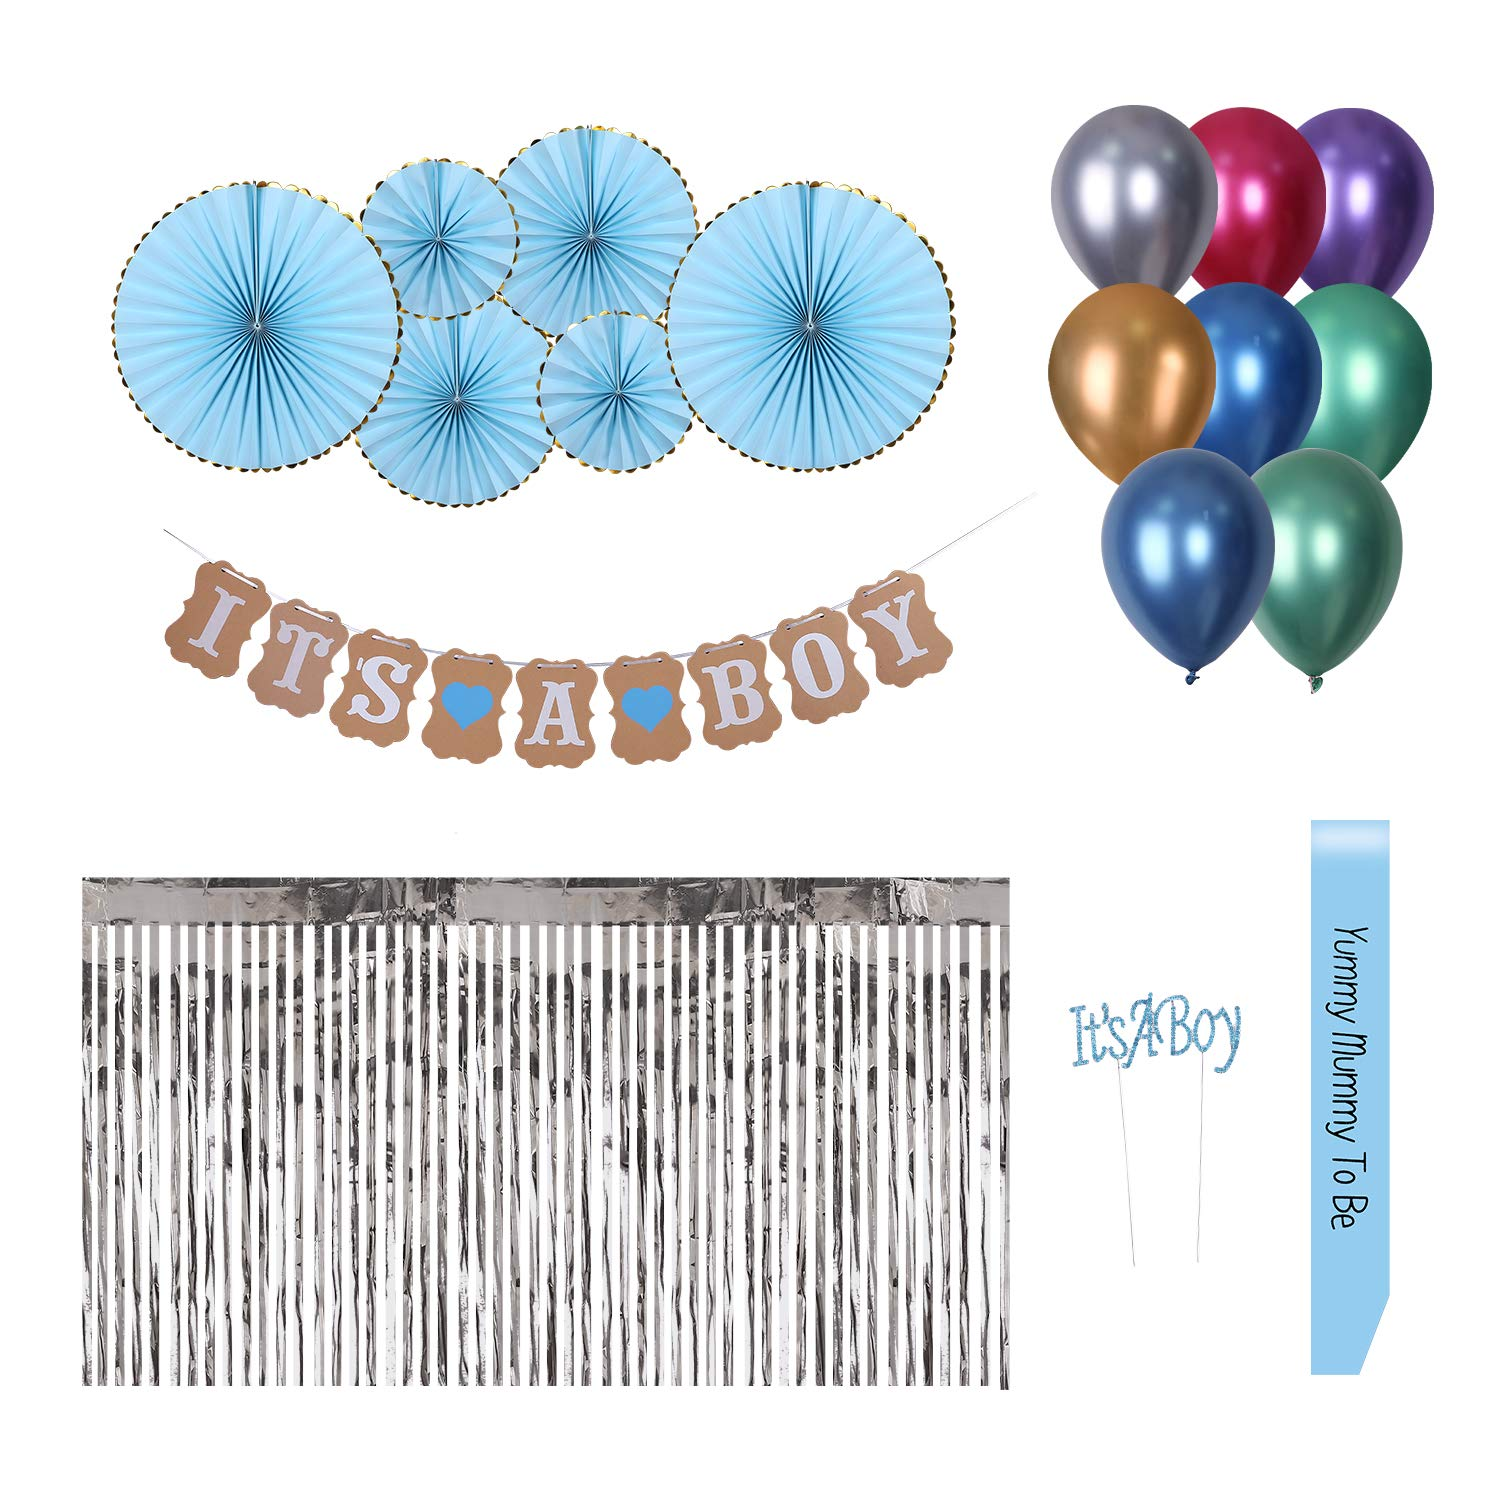 Baby Shower Boy Decoracion.Baby Shower Decorations For Boy Boys Party Supplies Favors Banner Balloon Nautical Blue Gold Silver Babyshower Decor Sash Table Skirt Cake Topper Bebe